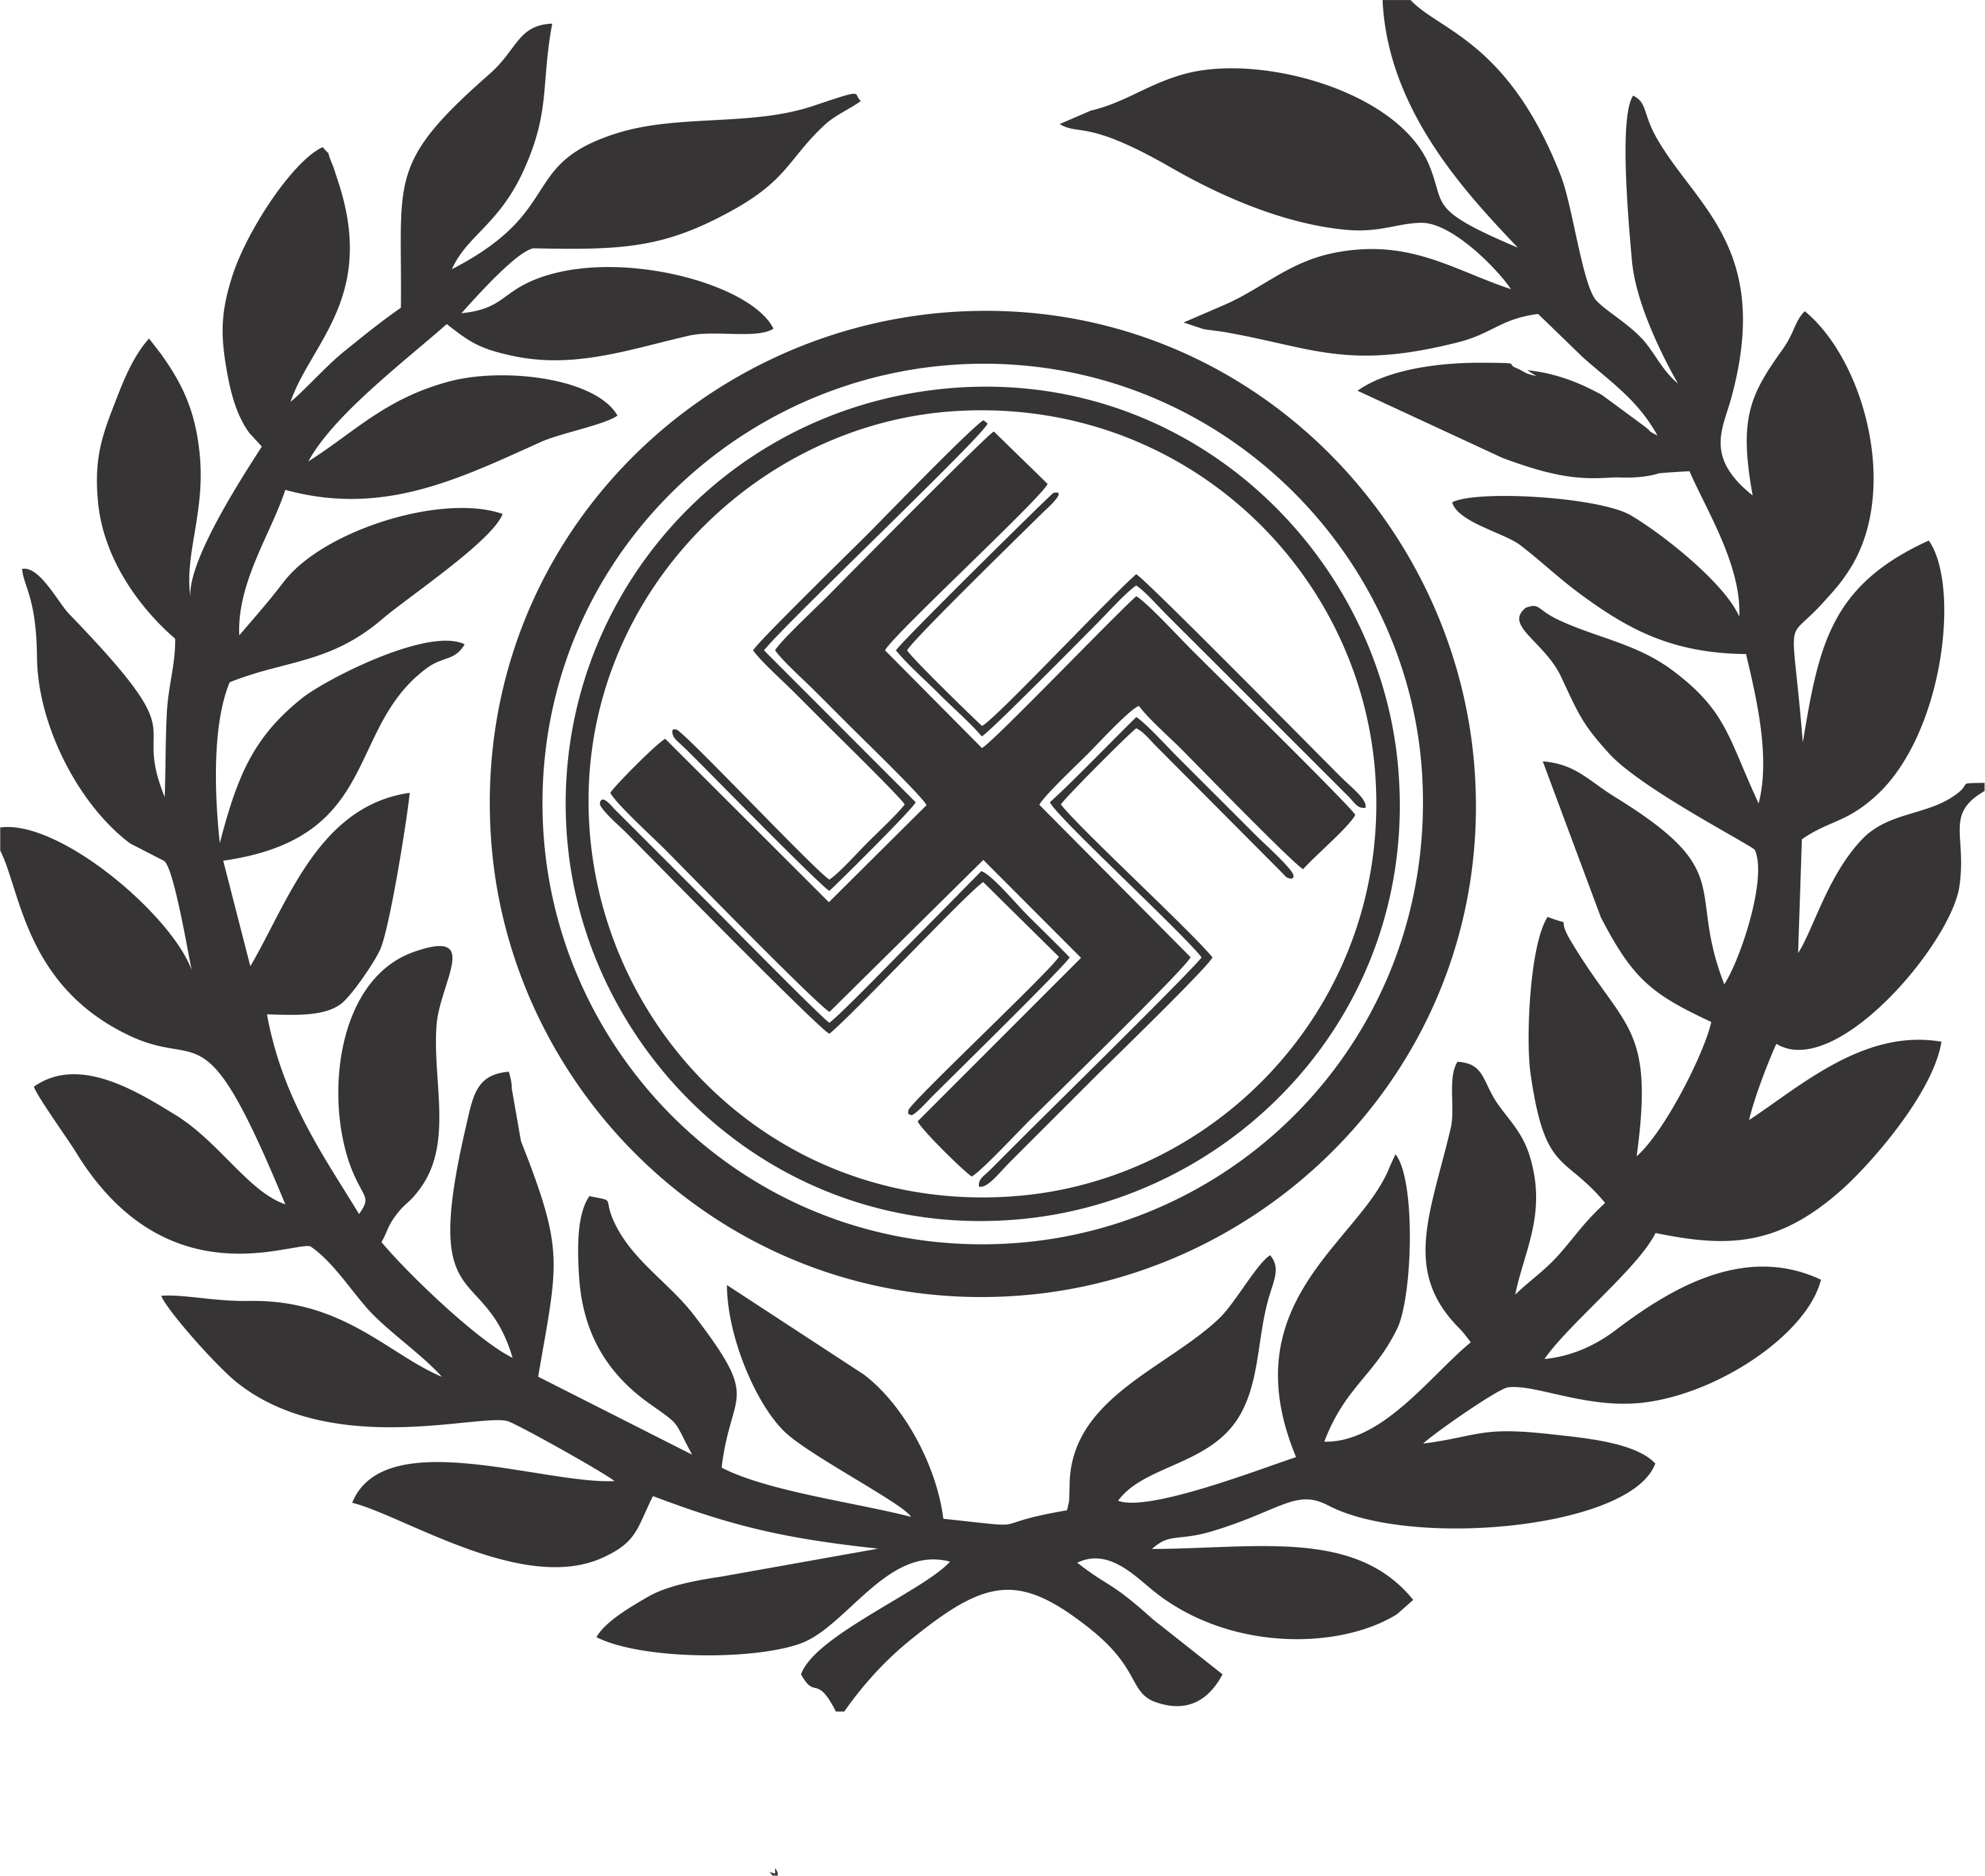 Nazi tattoo png. Engraving favourites by alpinus